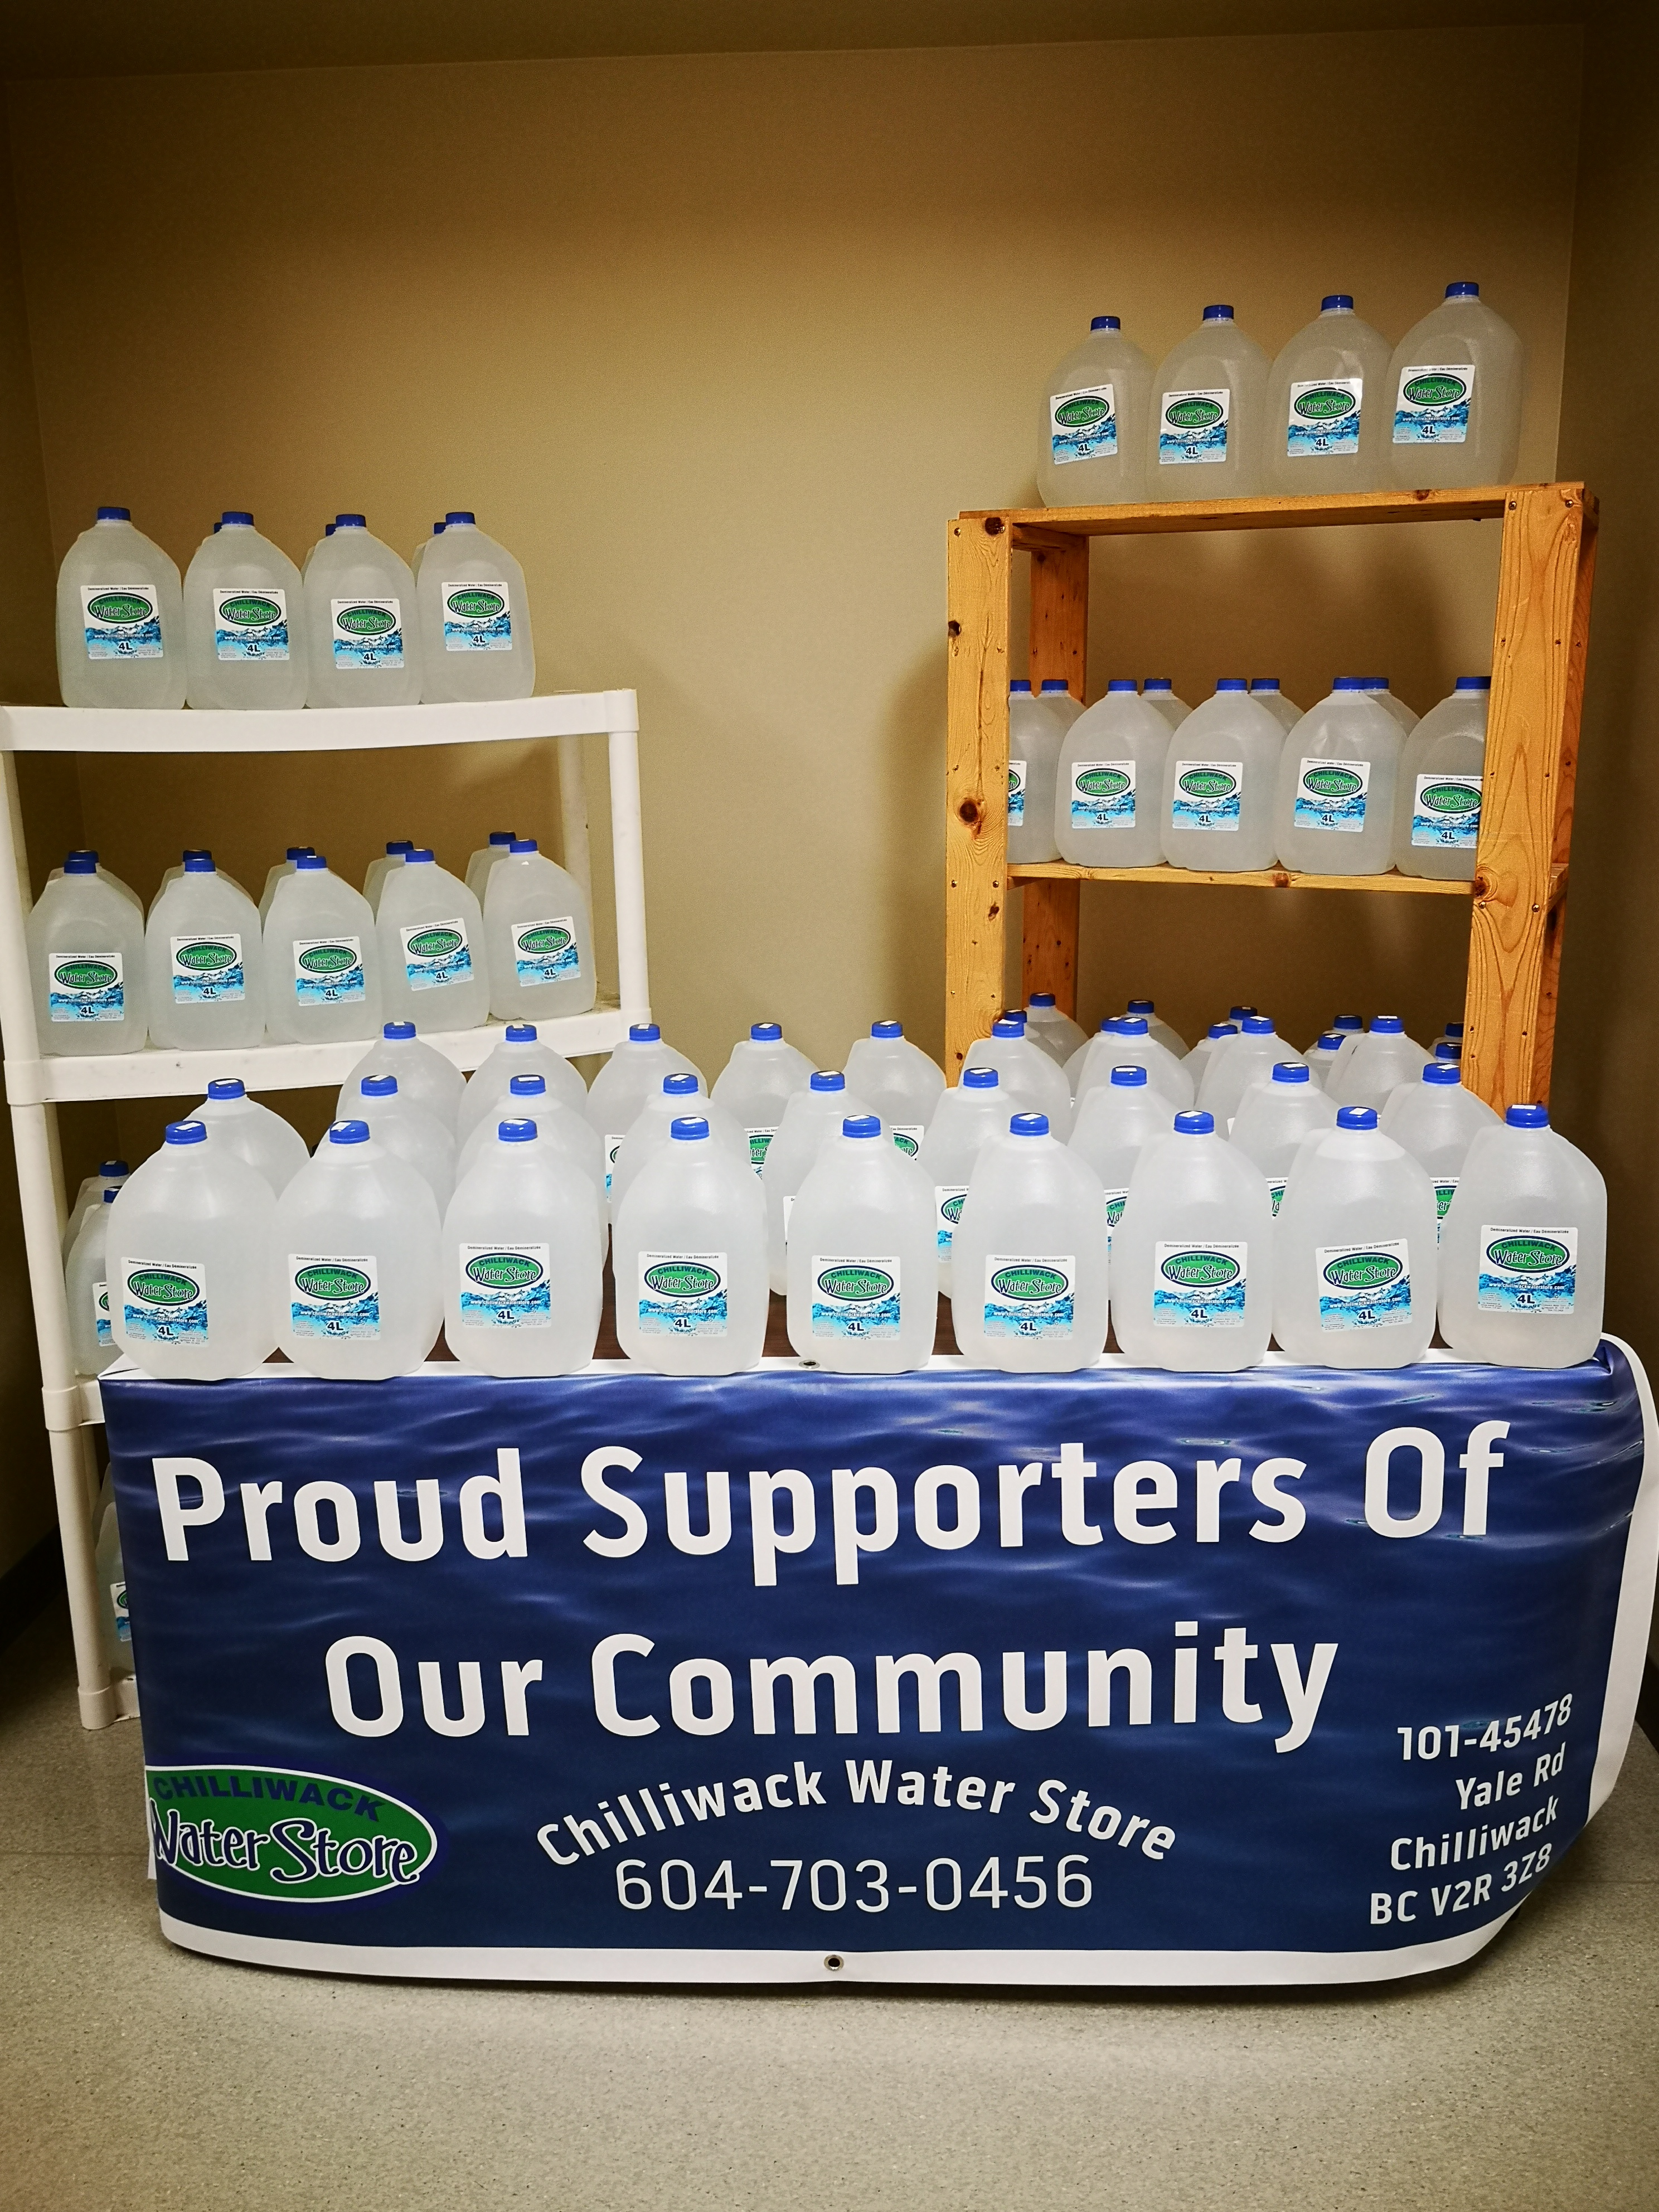 Donated water jugs